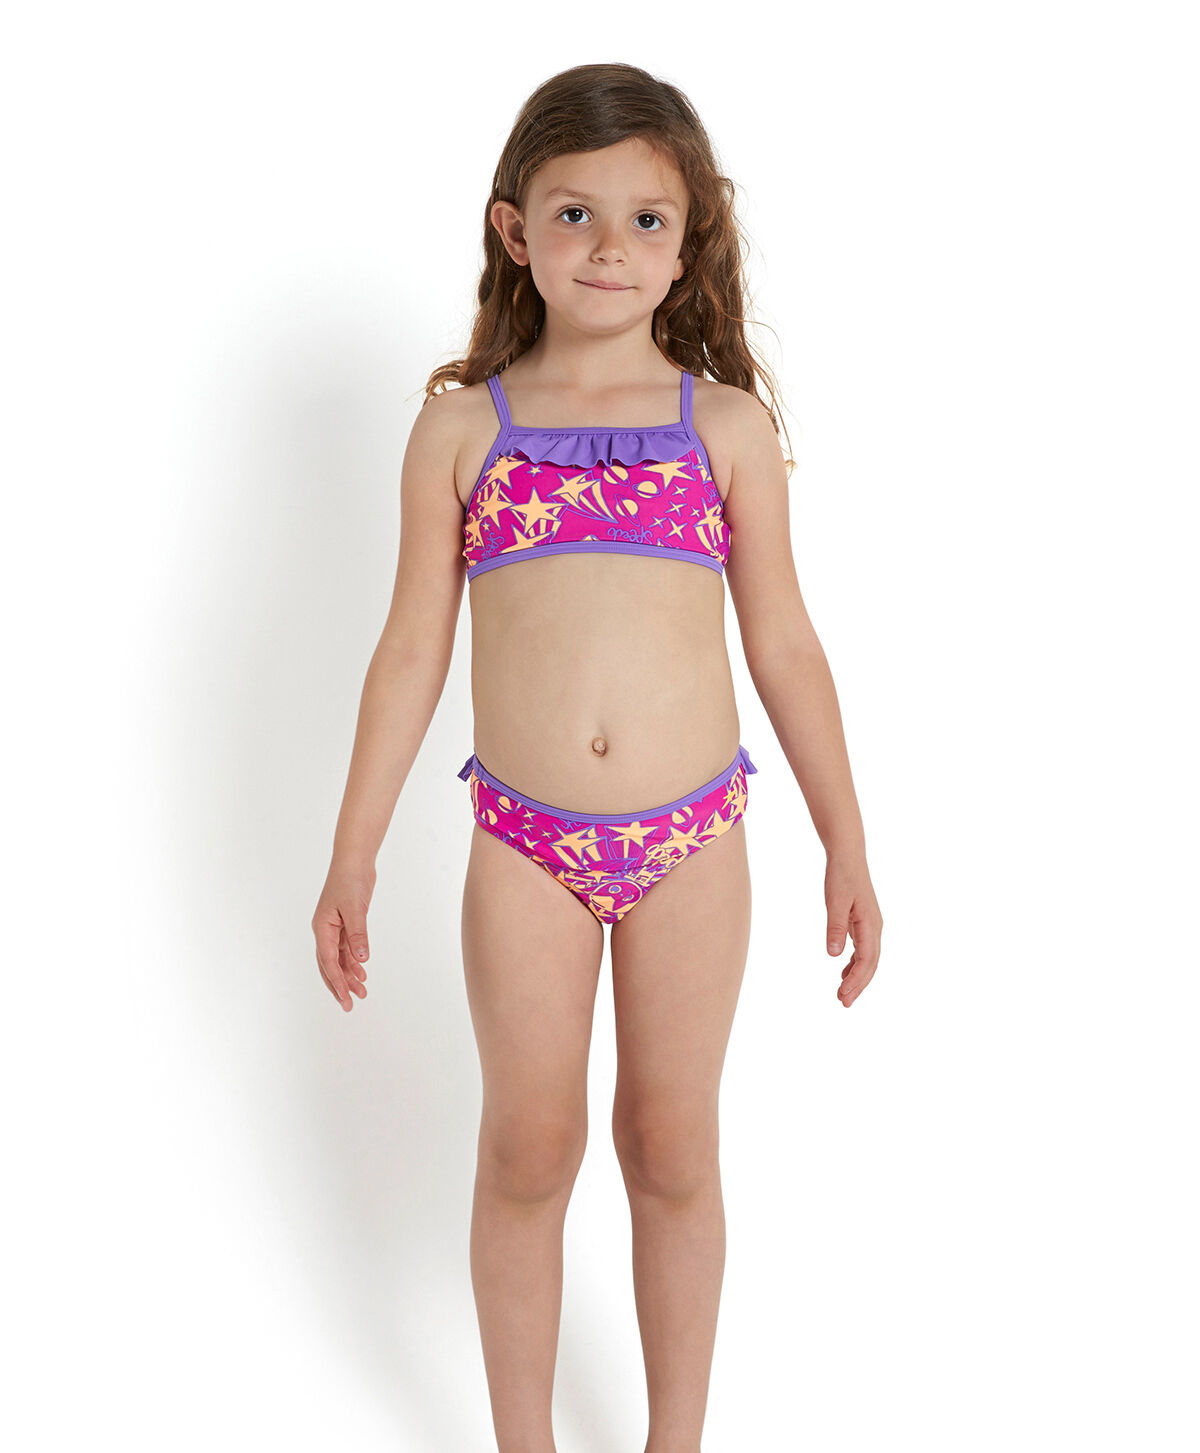 Girls' 2-piece Swimsuits. invalid category id. Girls' 2-piece Swimsuits. Showing 4 of 4 results that match your query. Search Product Result. Product - Hatley Baby Baby Girls' One Piece Swim Suit Summer Garden. Product Image. Product Title. Hatley Baby Baby Girls' One Piece Swim Suit Summer Garden. Price $